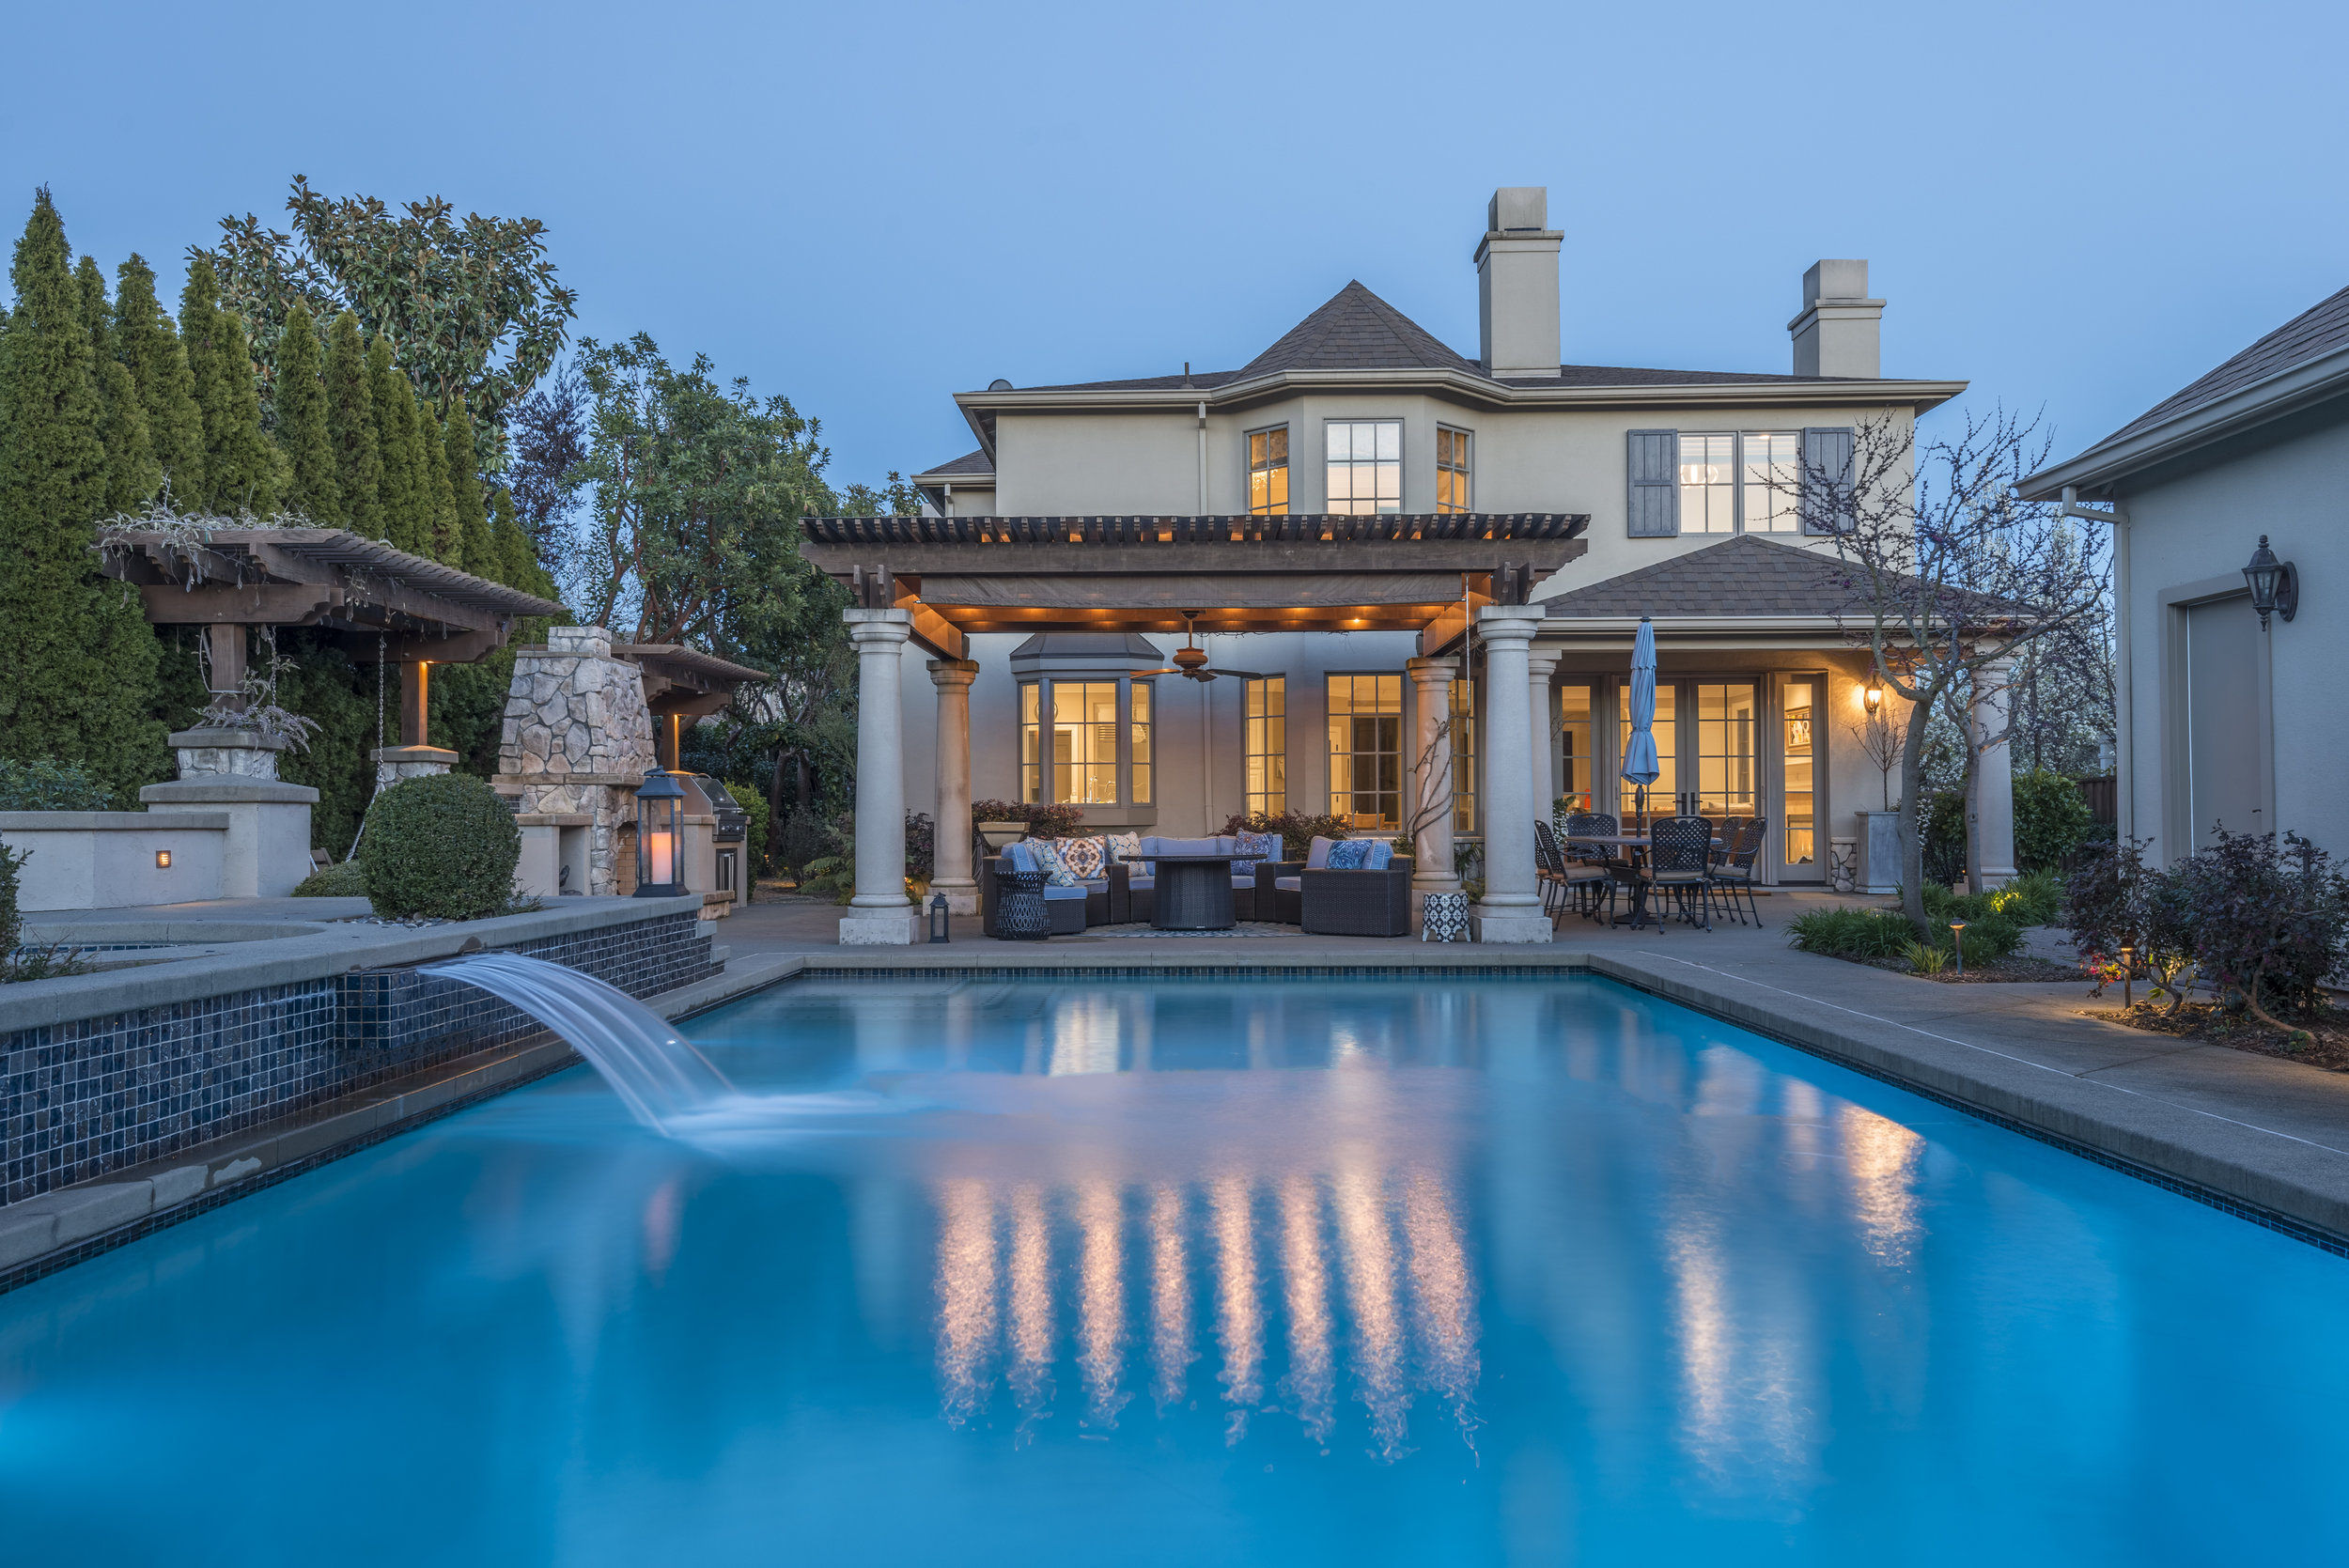 585 6th St East | Sonoma